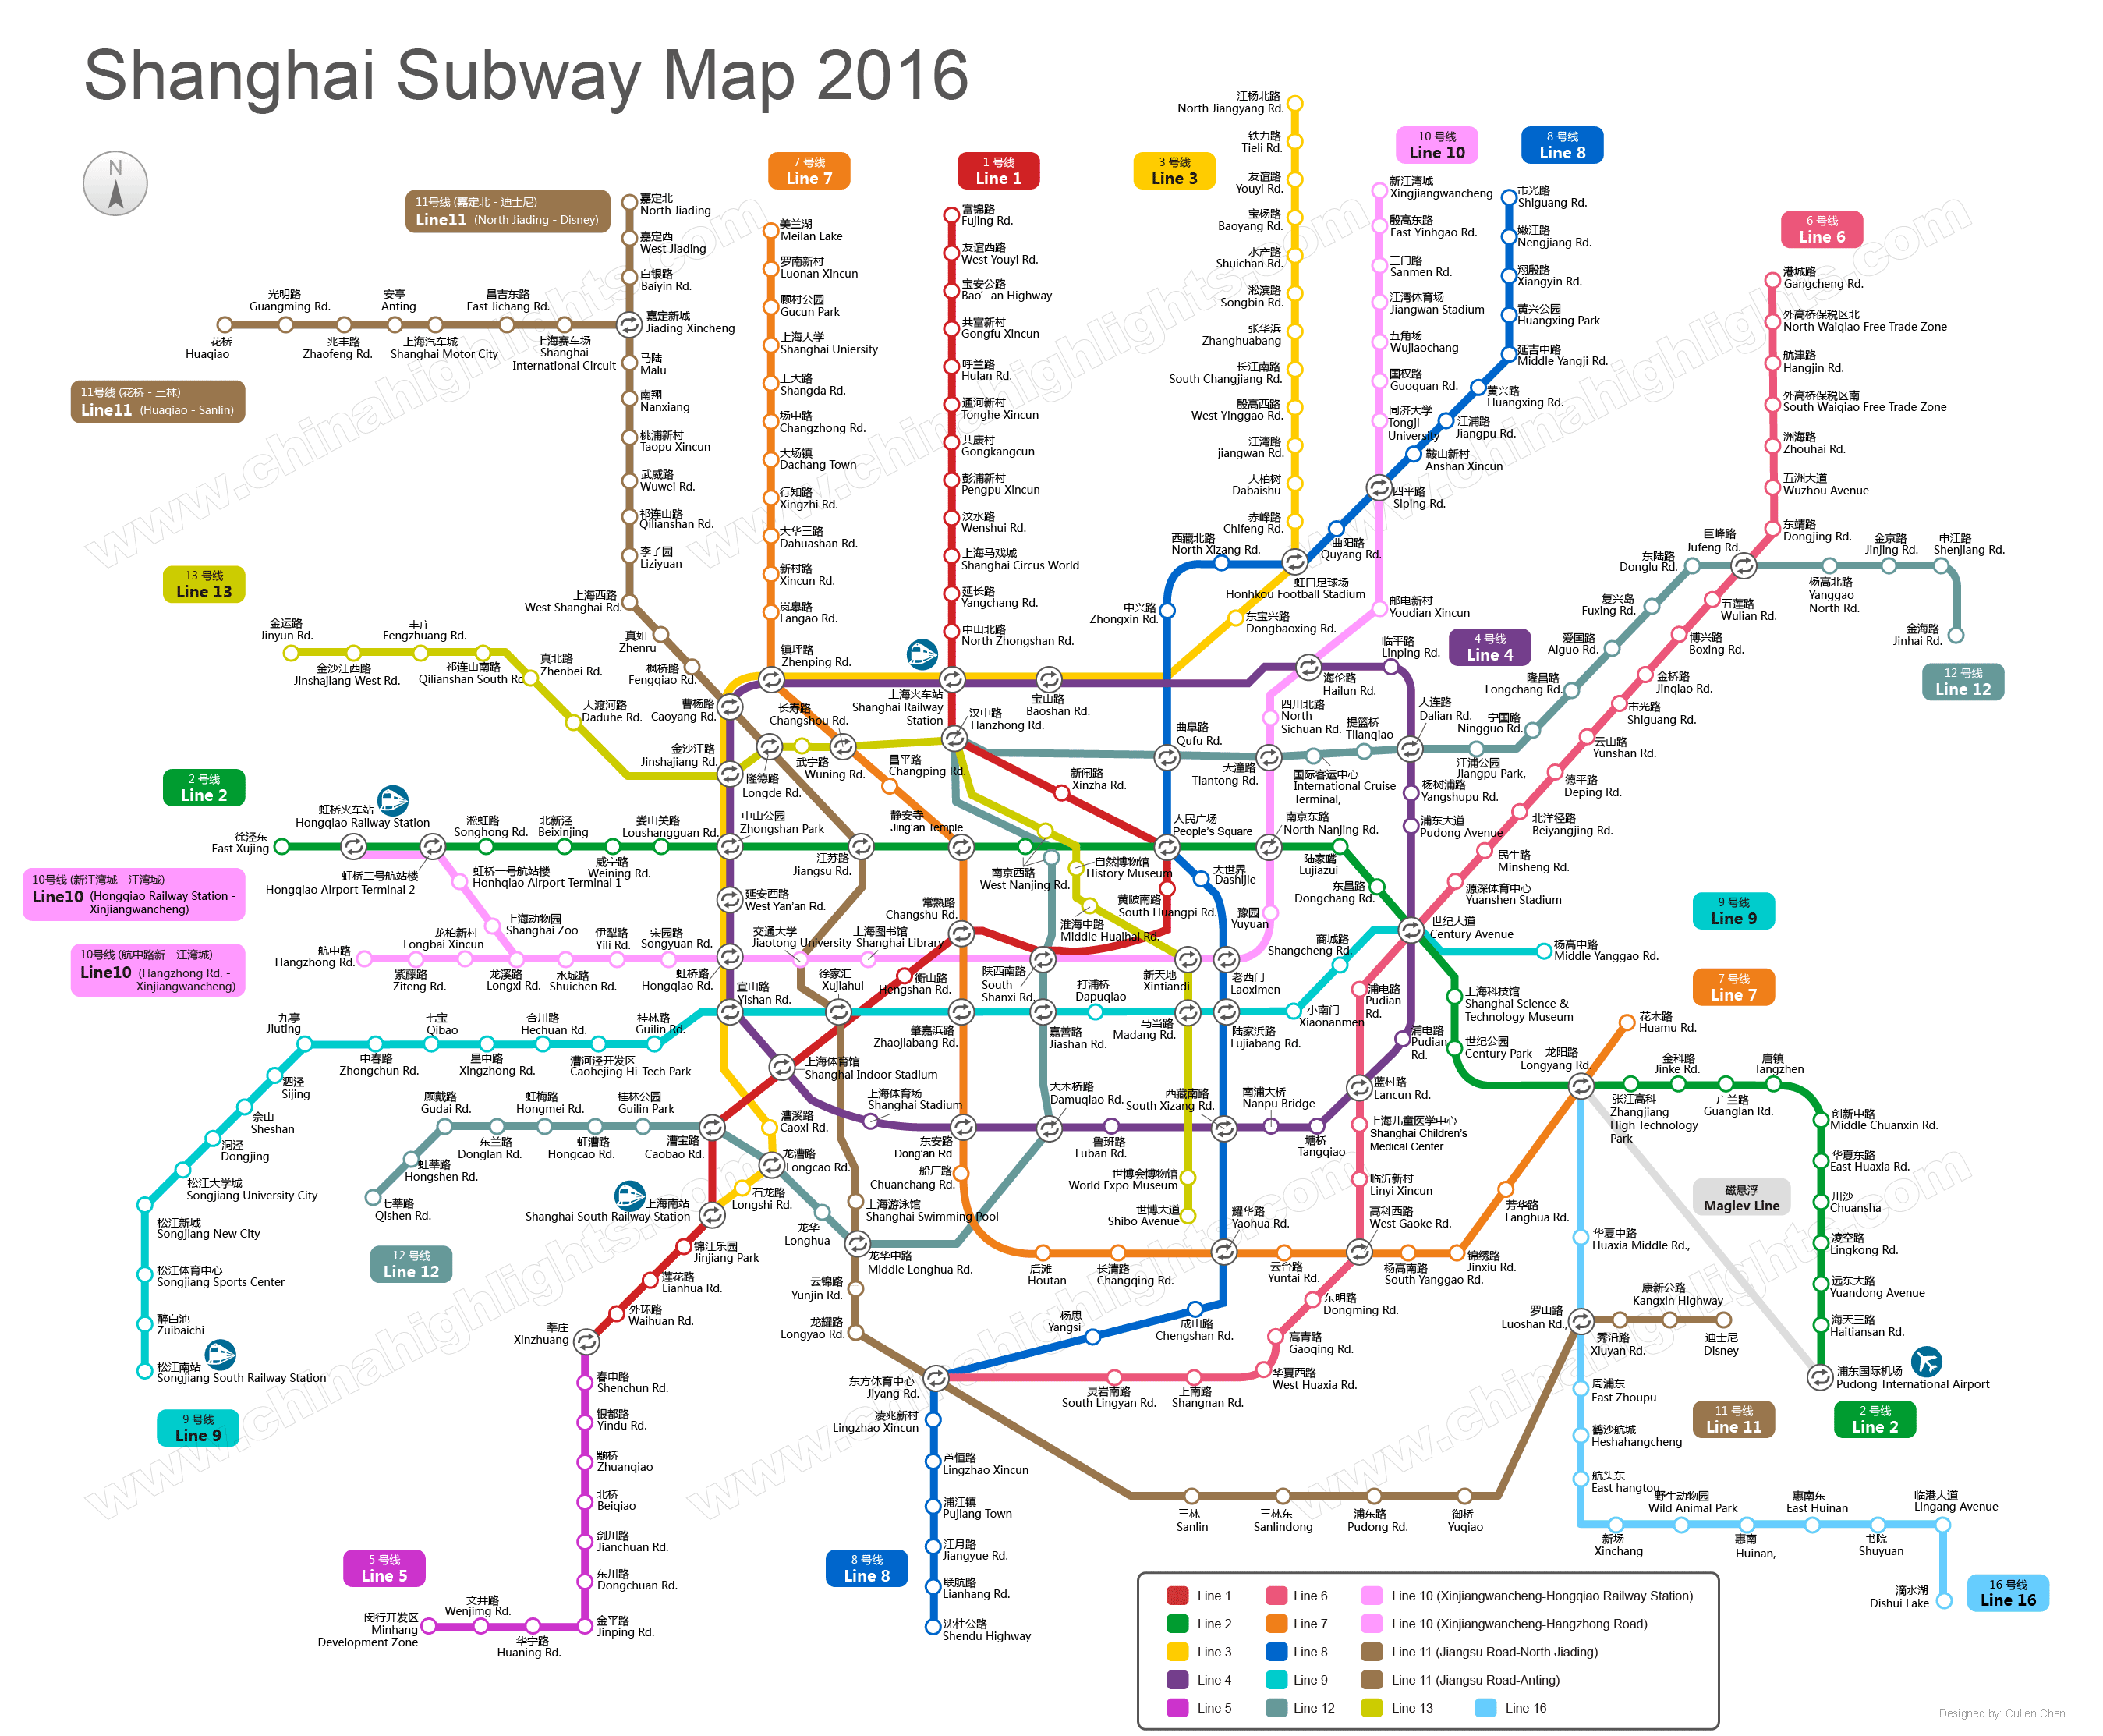 Guangzhou Subway Map 2017.Shanghai Subway Map Shanghai Subway Map Shanghai China Travel